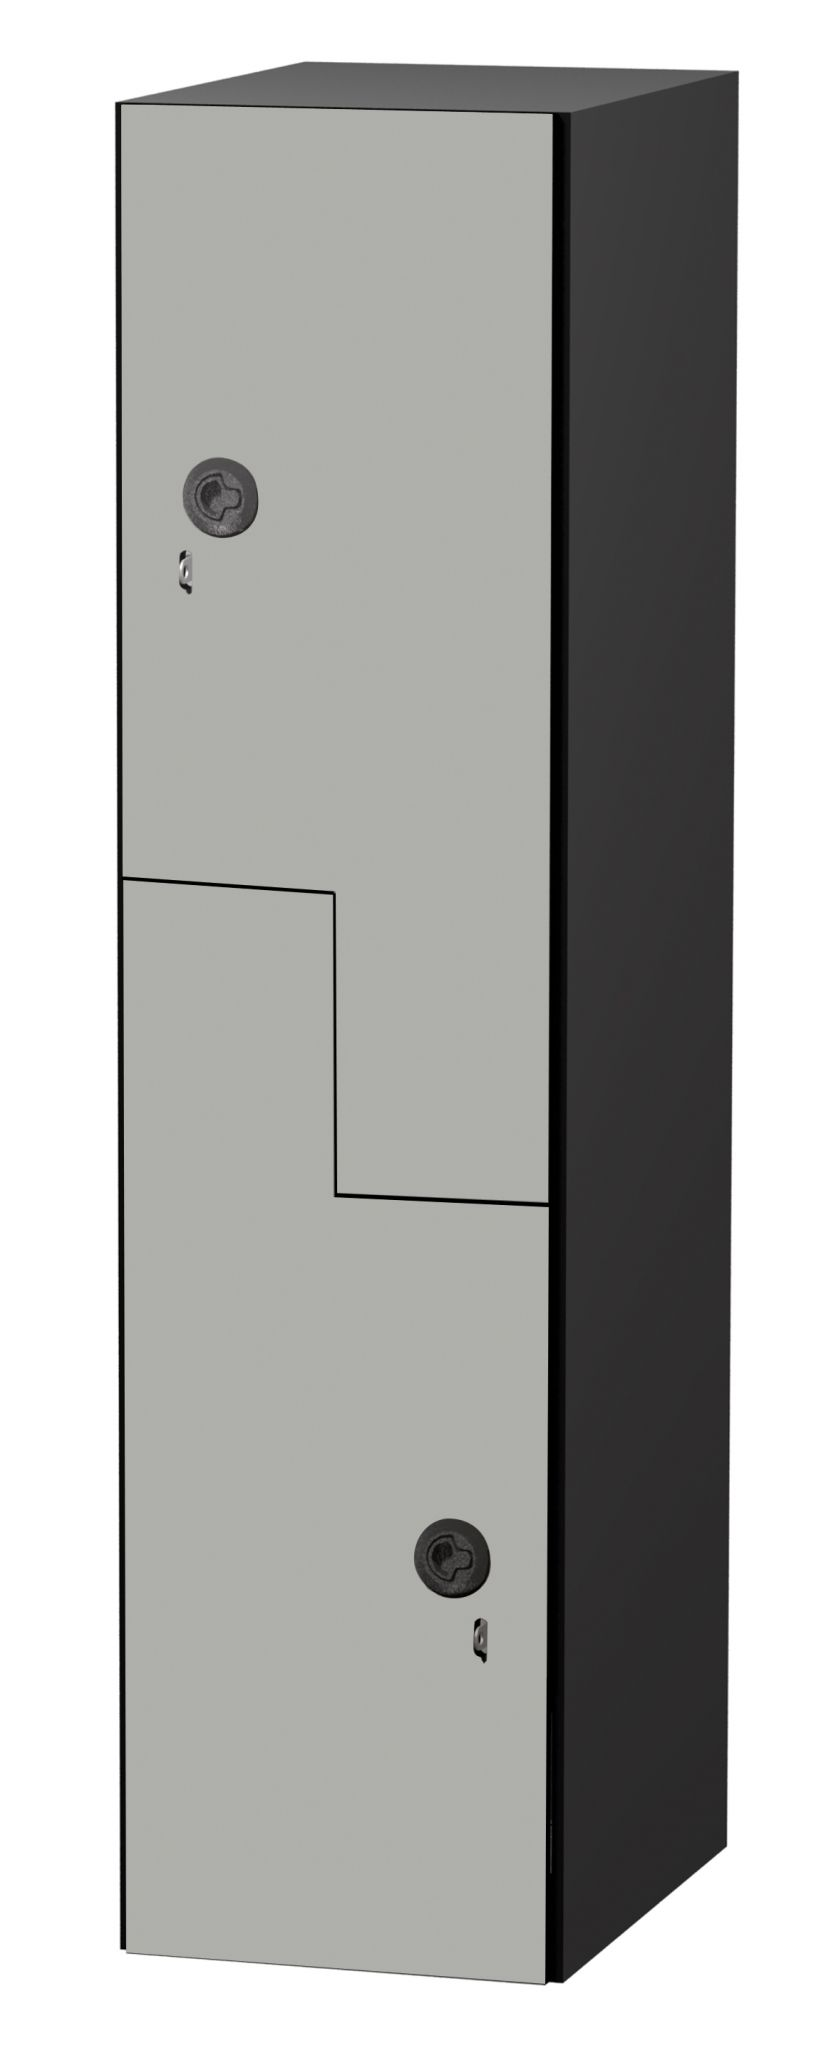 Various restroom/ change room equipment and furnishings need to be considered from a universal access mindset in terms of placement. Examples include Z-pattern phenolic lockers (1), standard recessed waste receptacles (2), recessed paper towel dispensers (3), and standard L-shaped (left or right side) phenolic shower stall seats (4).